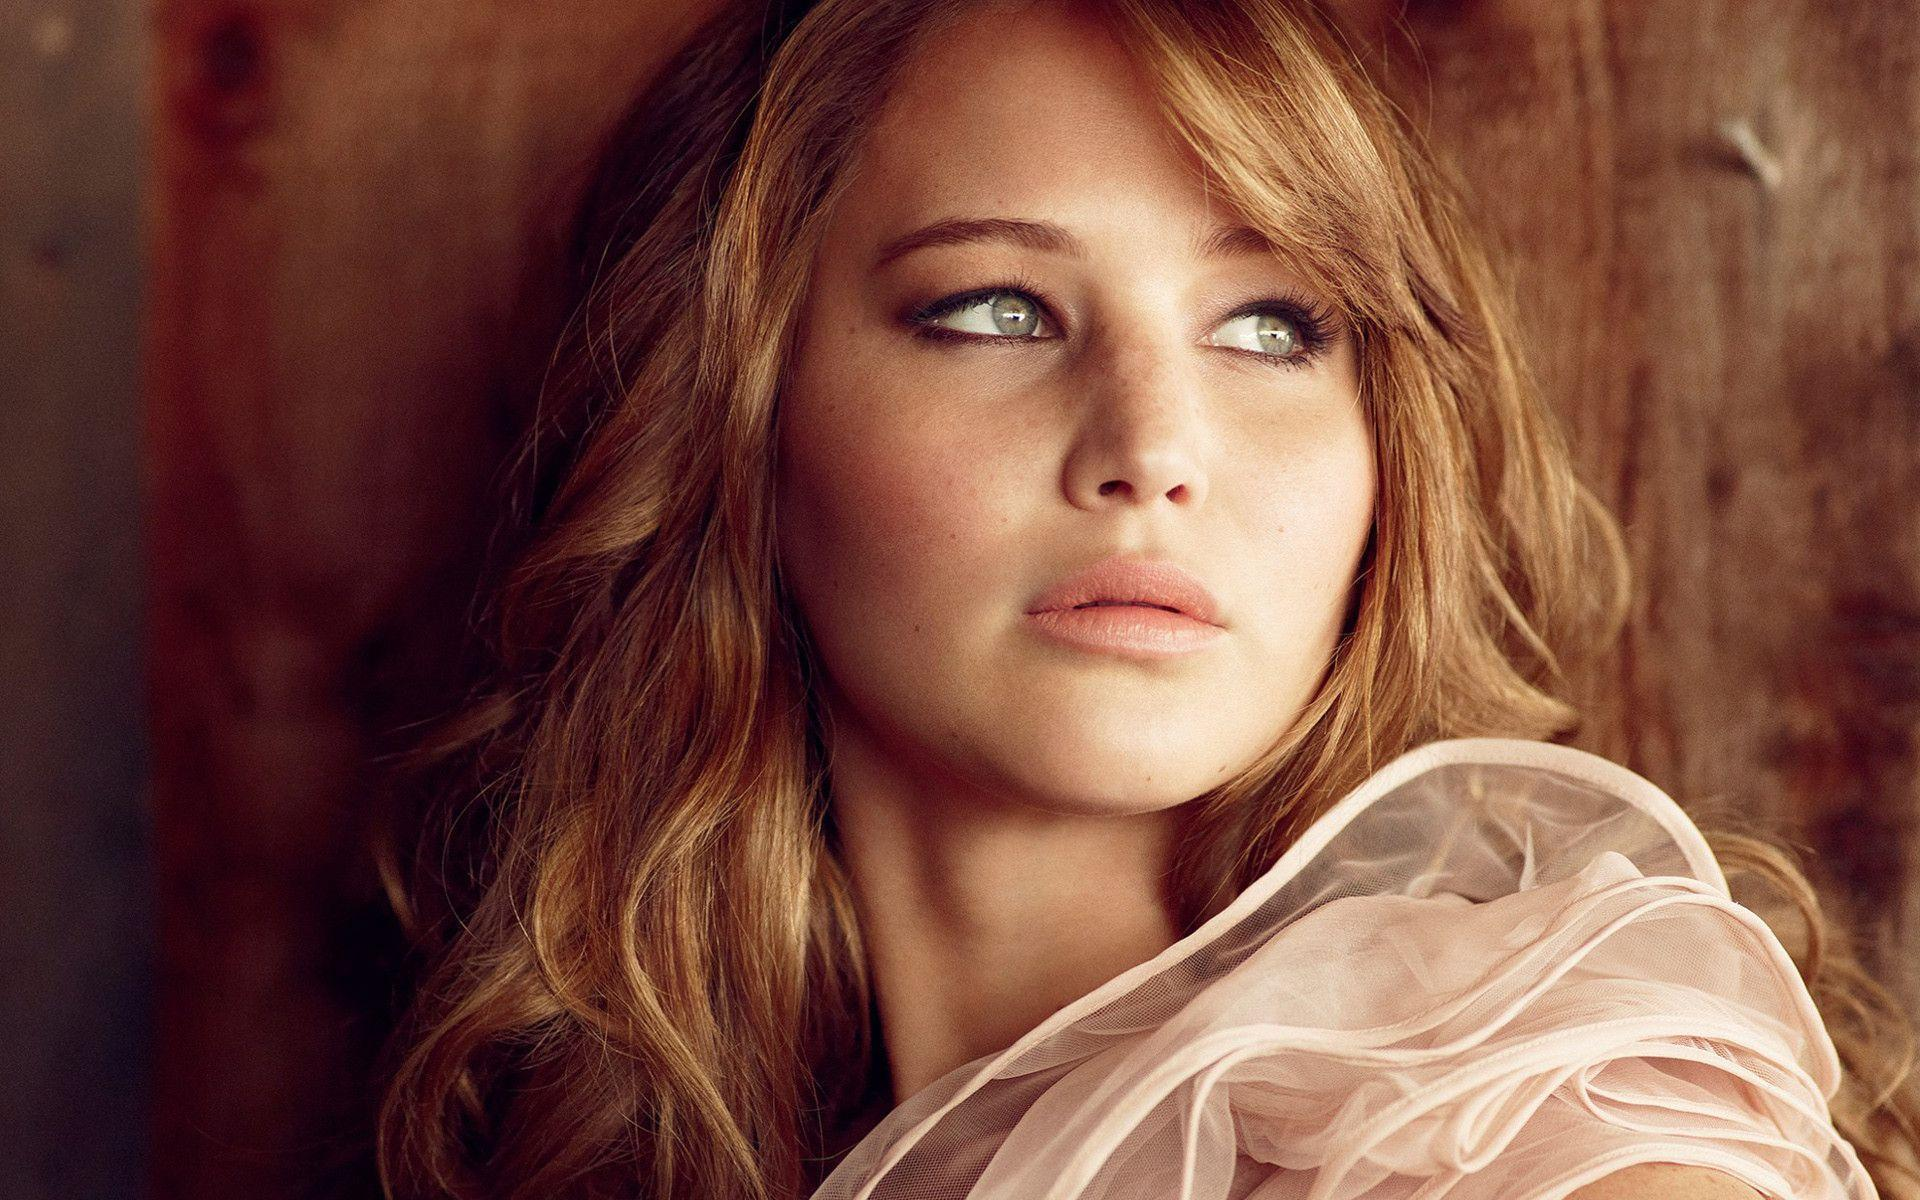 Jennifer Lawrence Wallpapers - Page 1 - HD Wallpapers